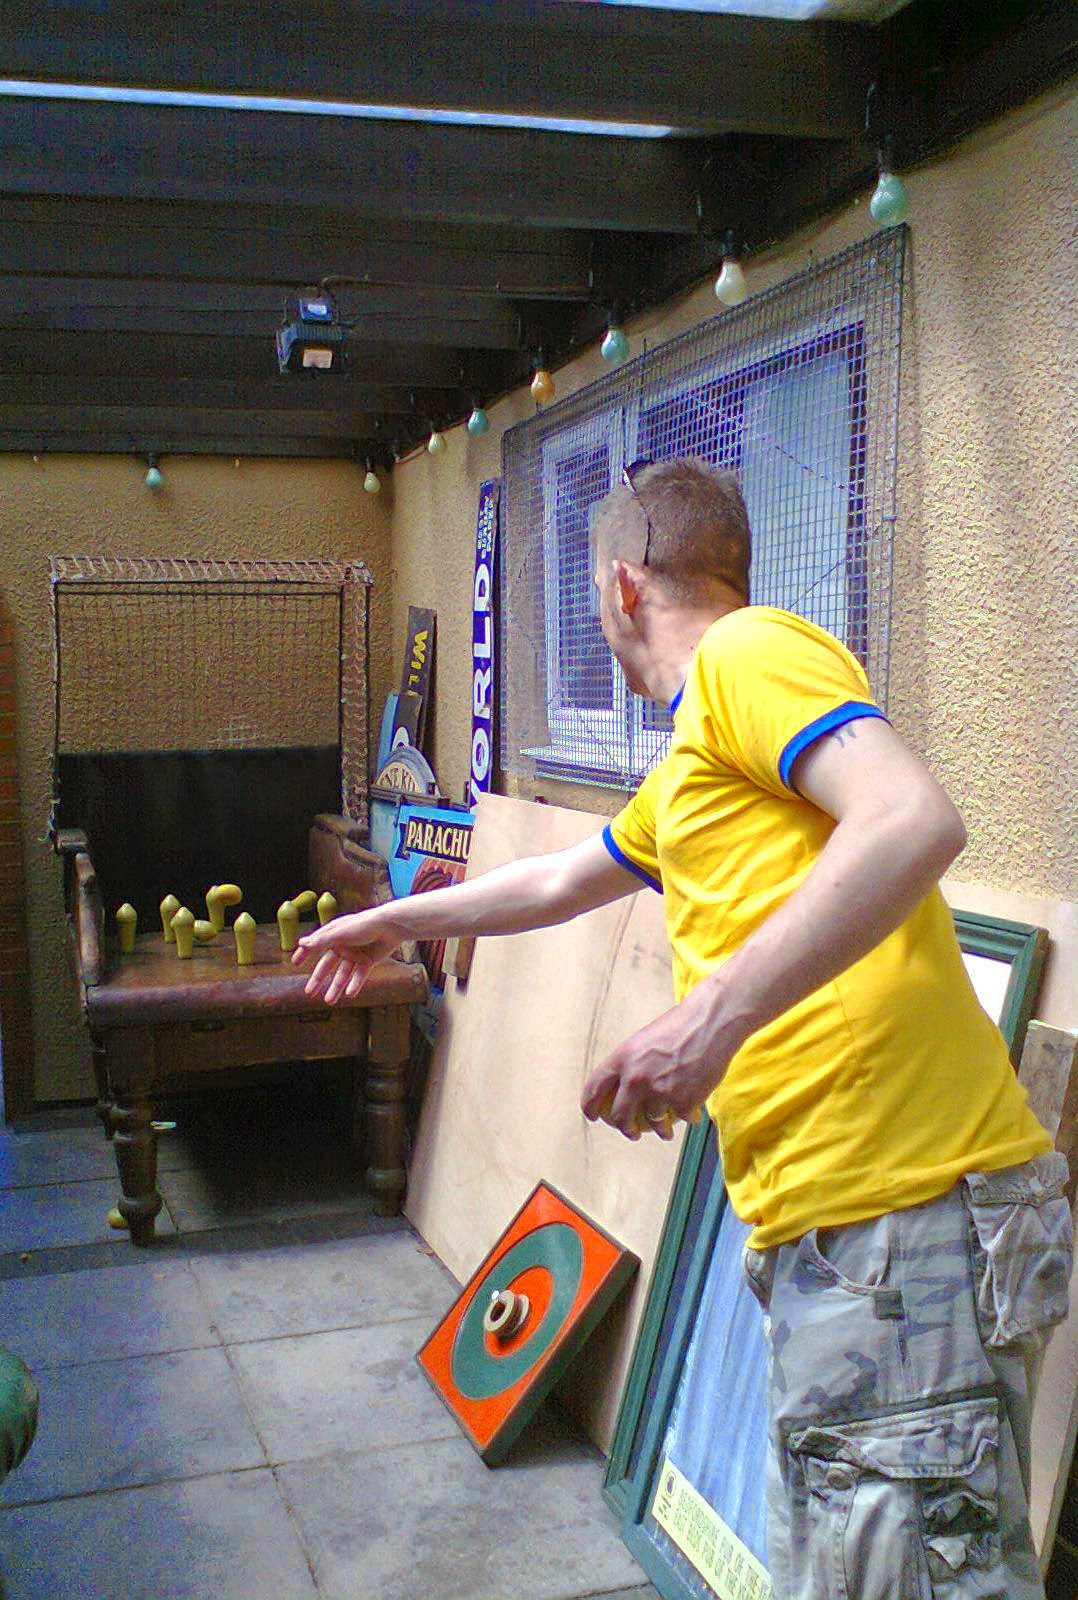 Playing Northamptonshire Table Skittles at the Engineers Arms pub in Henlow, Bedfordshire